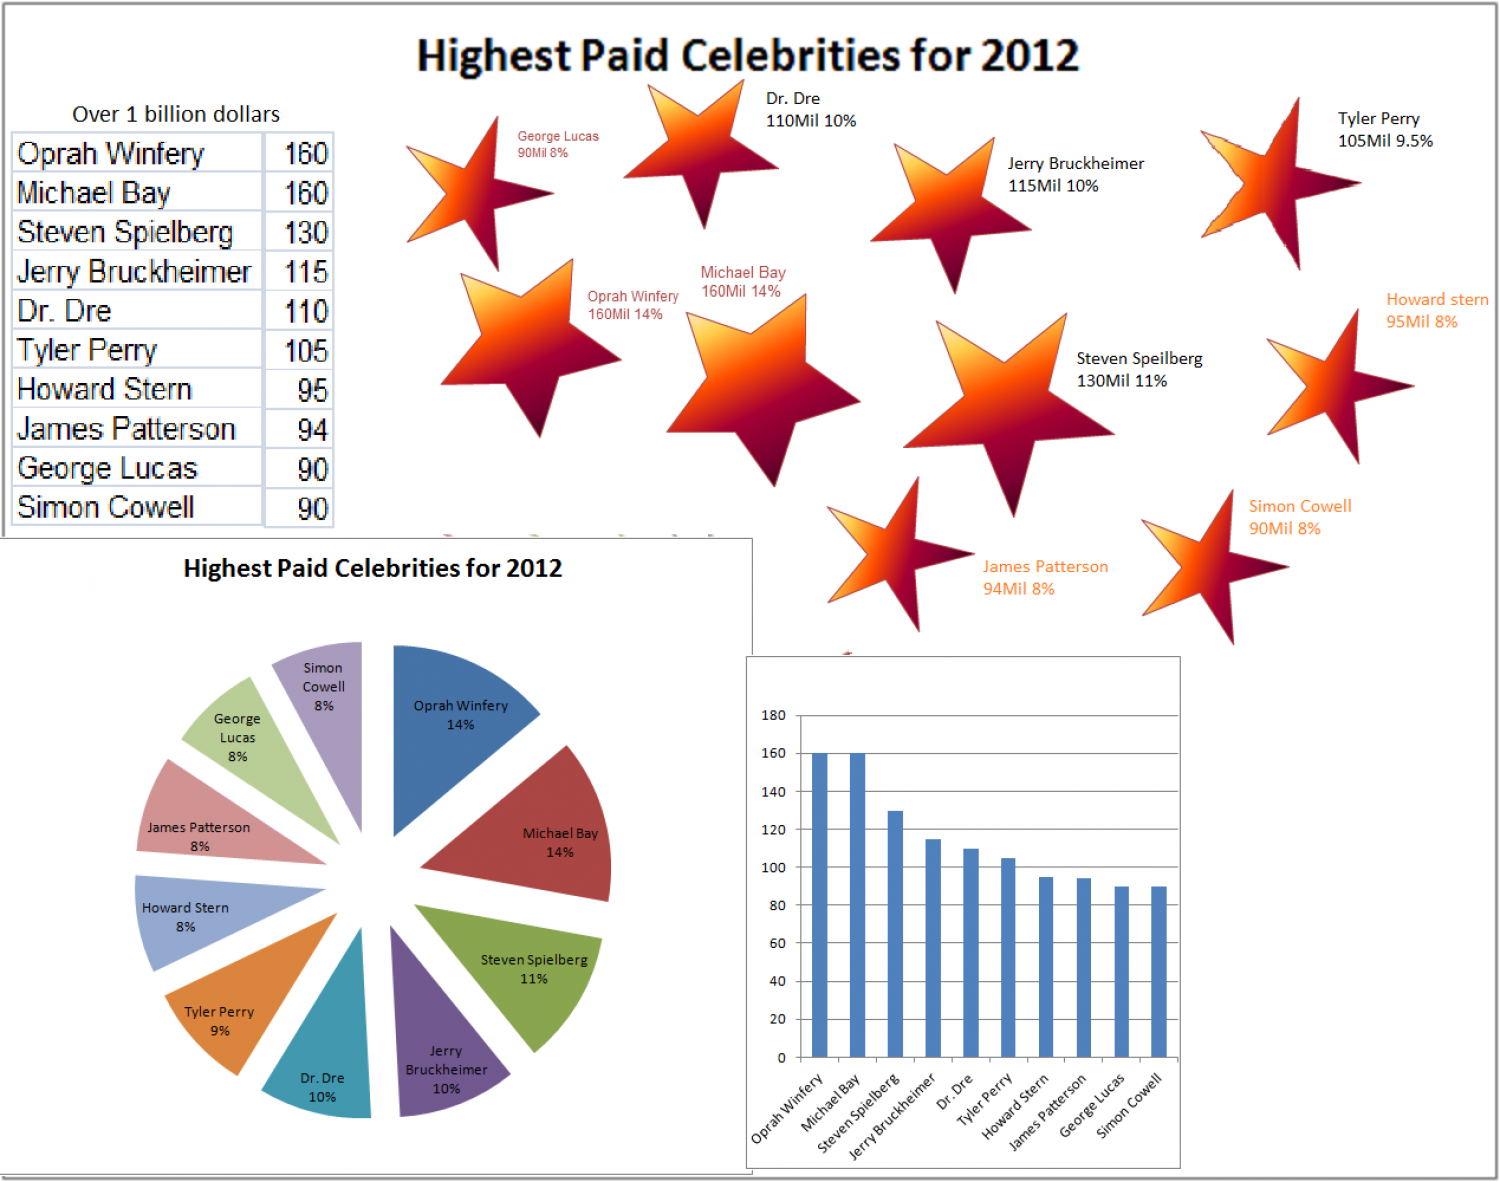 Highest Paid Celebrities for 2012 Infographic